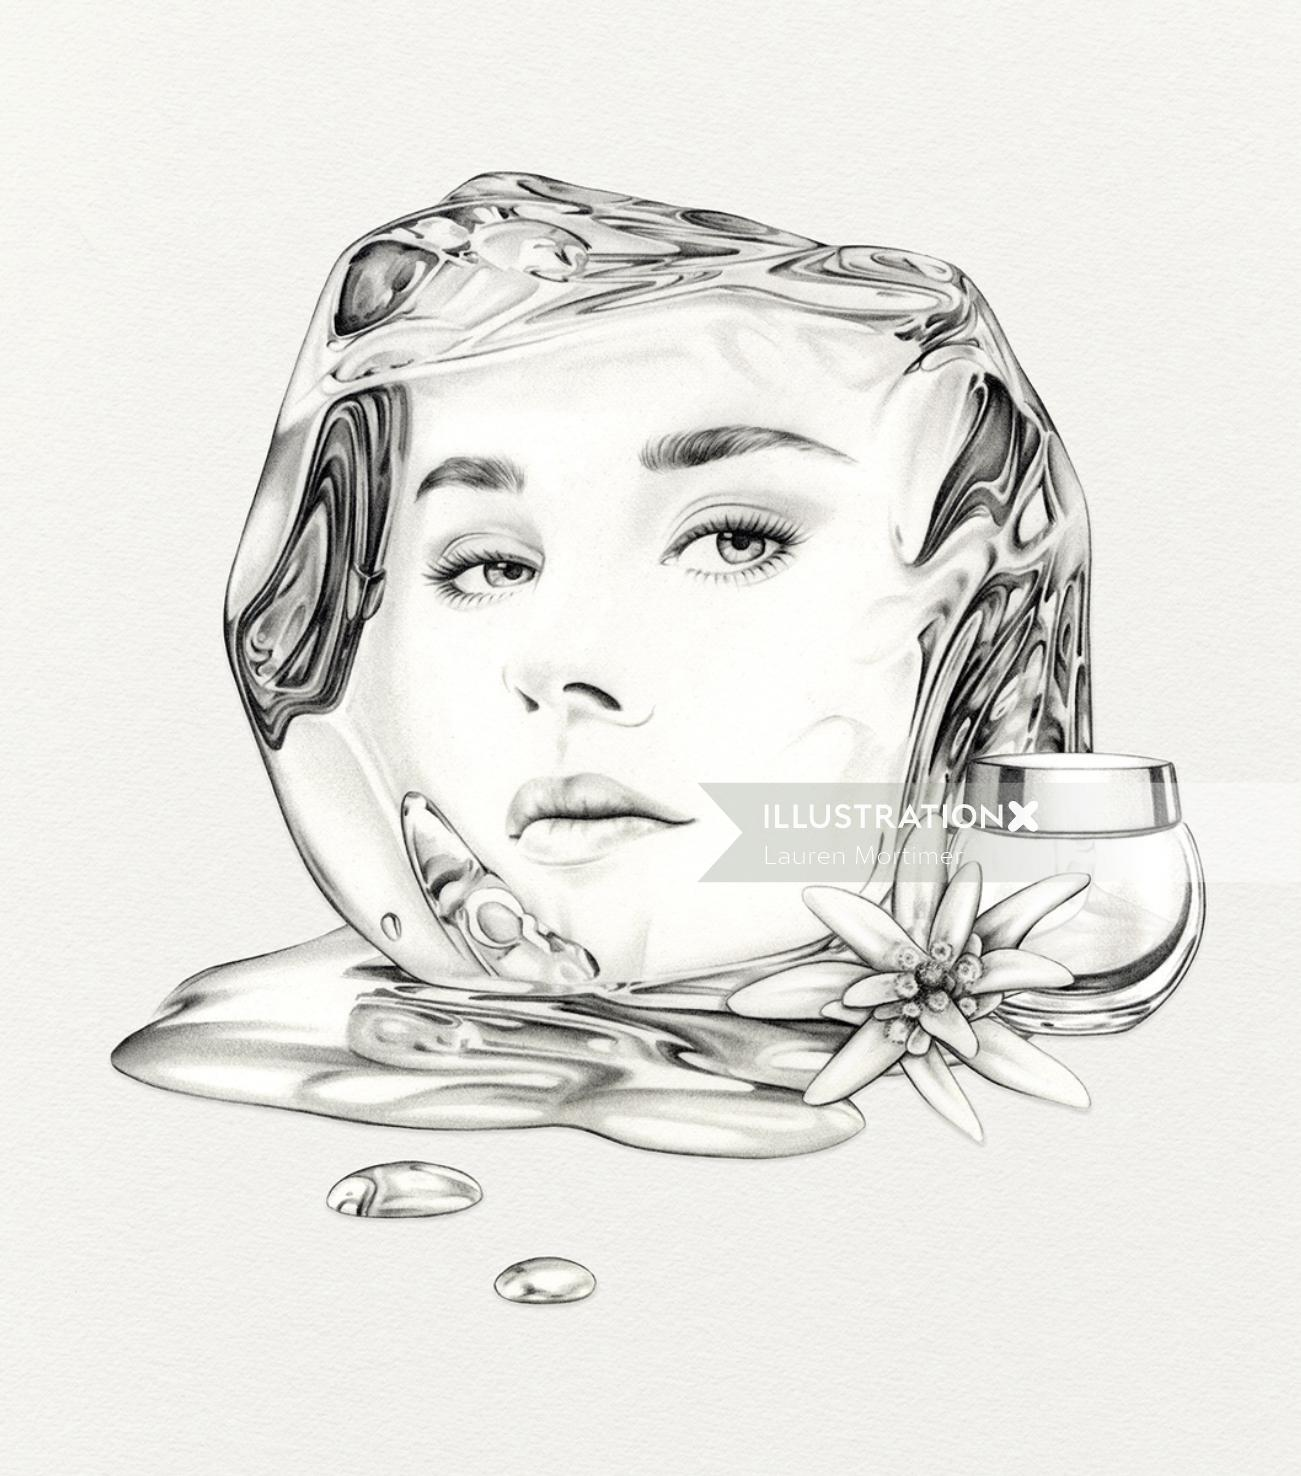 Pencil drawing of a female face